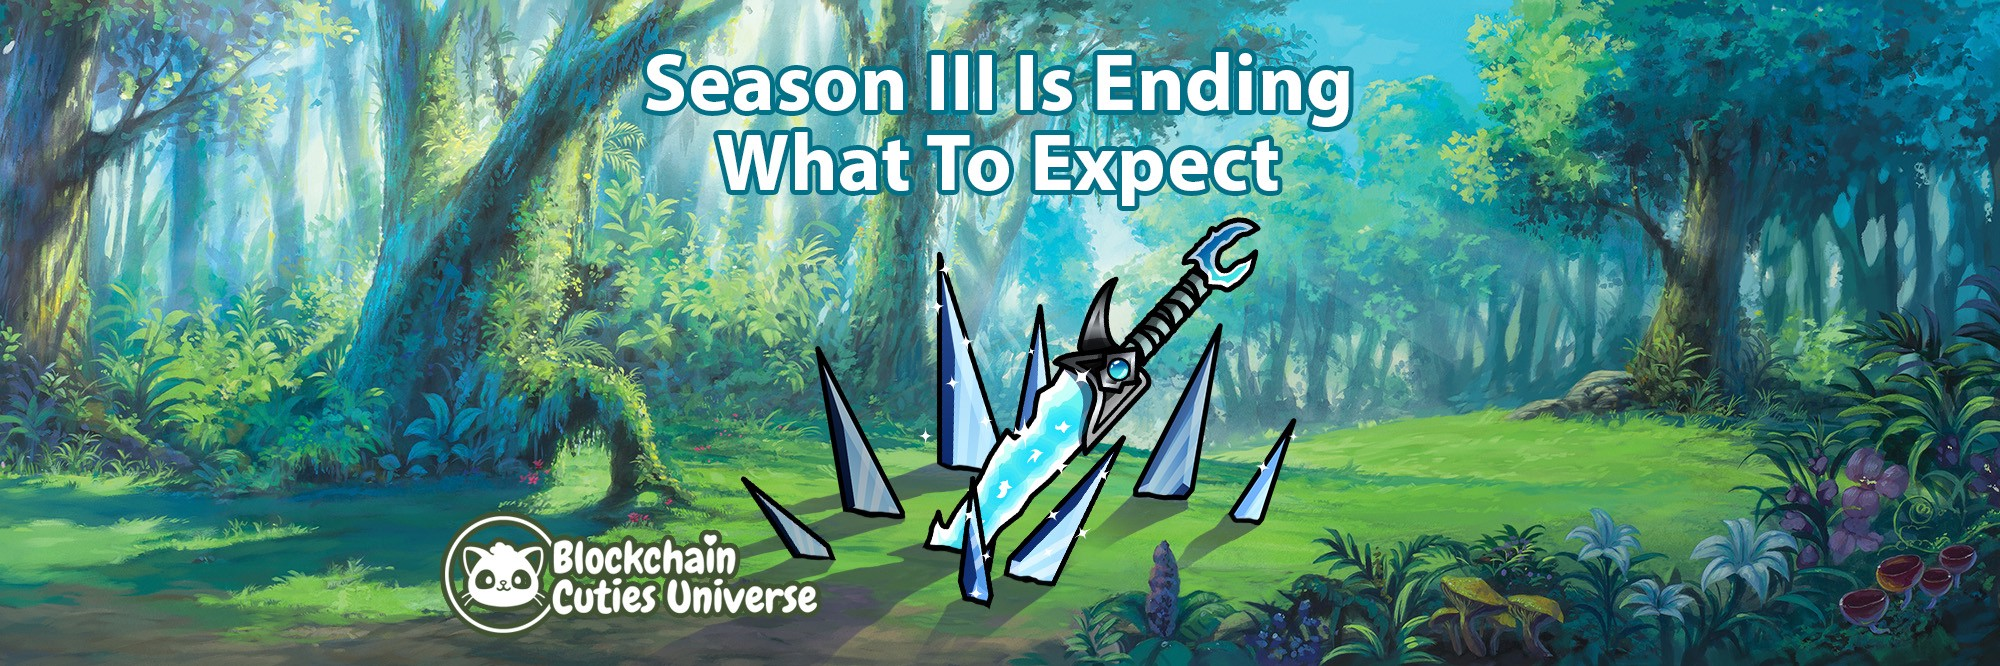 Season III is ending. What to expect.